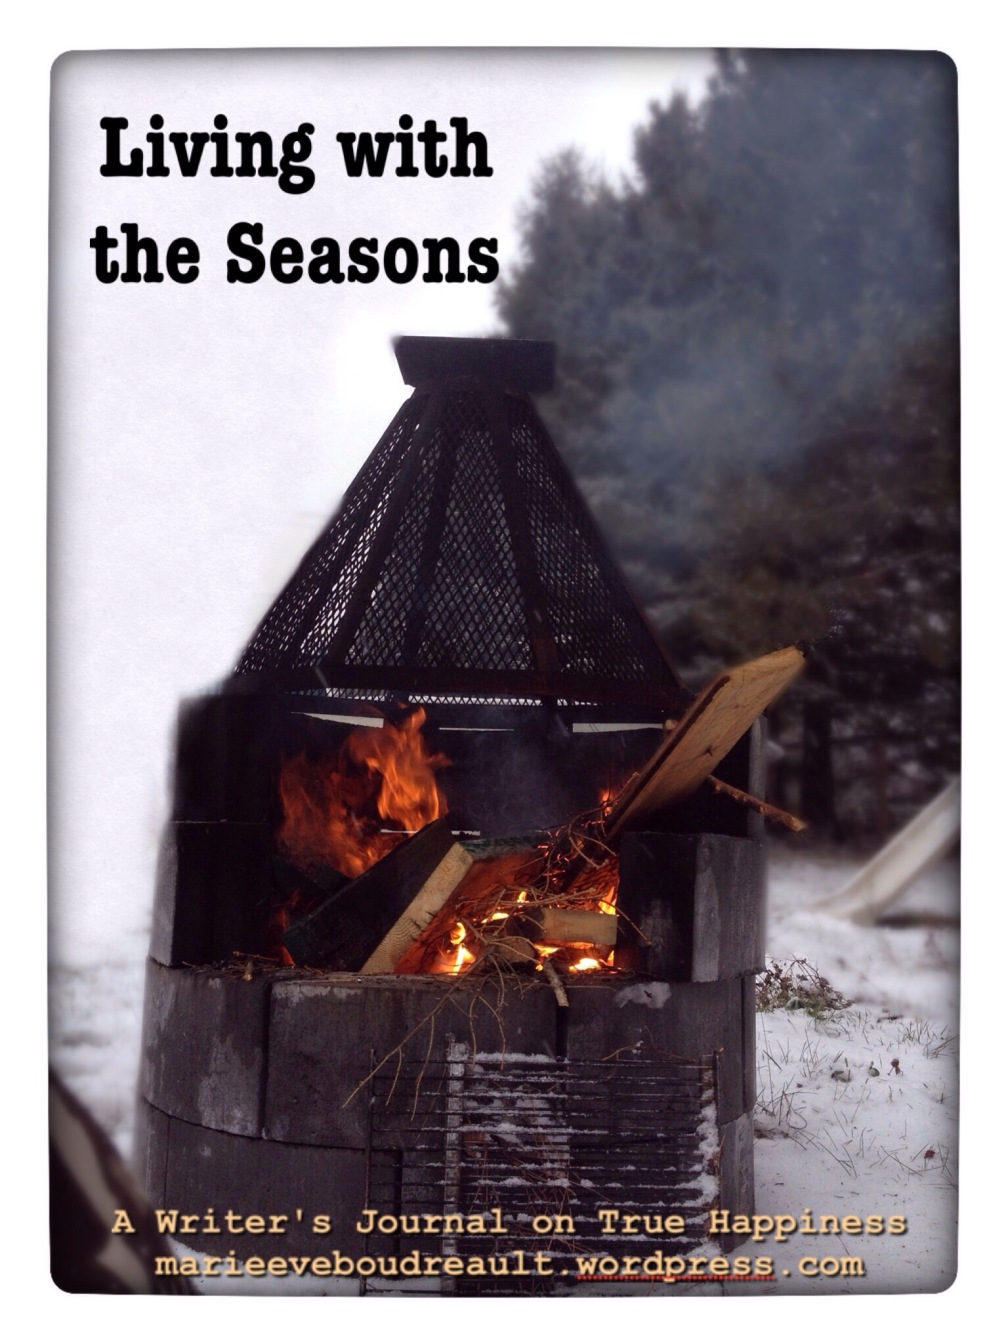 Living with the seasons entering winter as a season of rest journal true happiness marie-eve boudreault blog book how to live winter